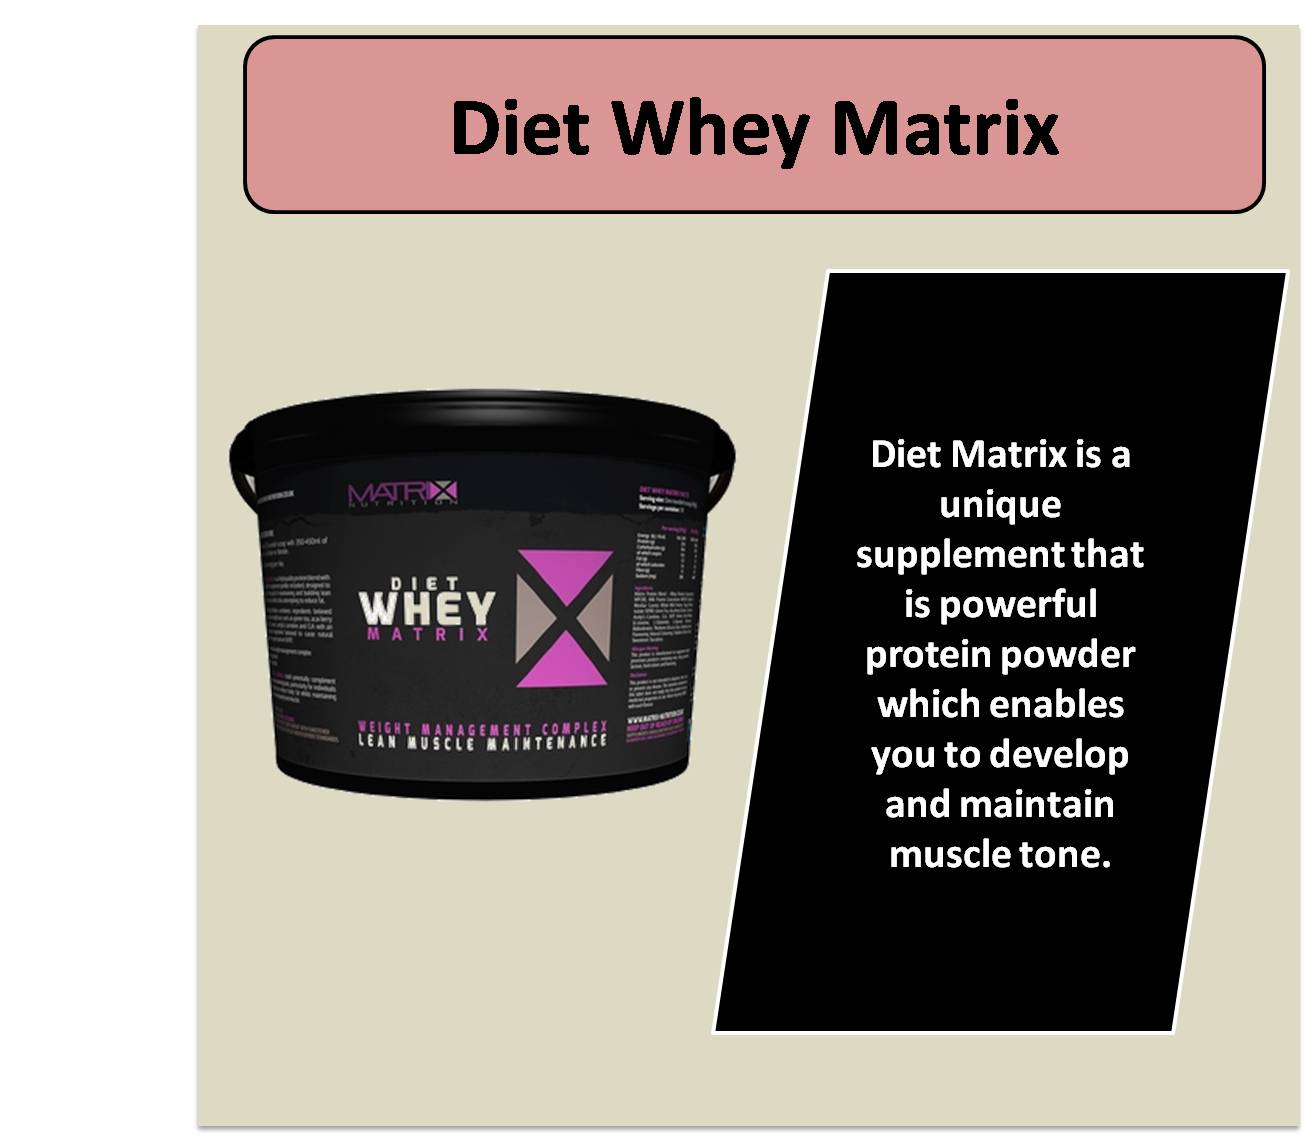 Diet Whey Matrix